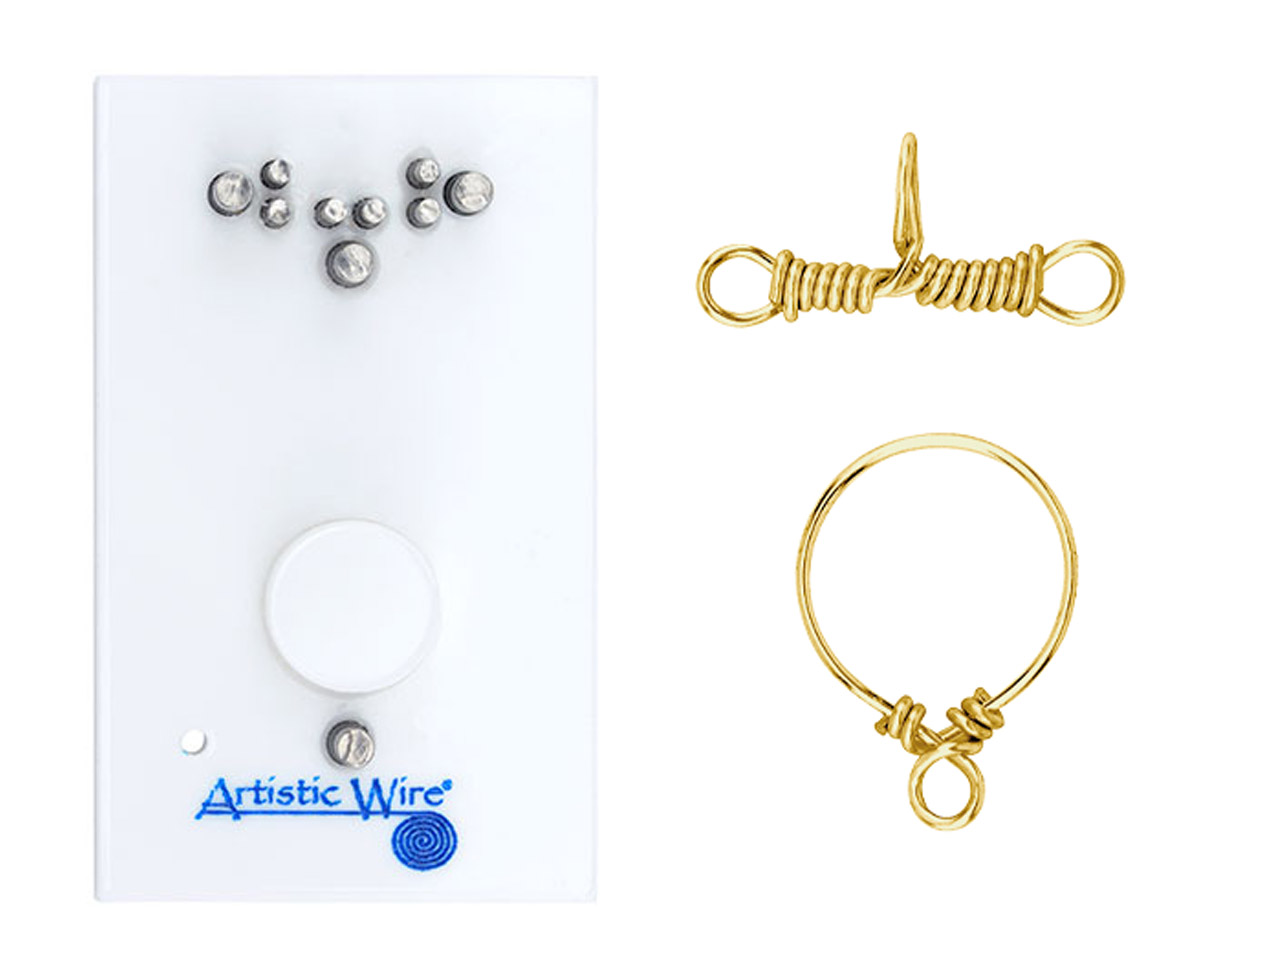 Beadalon Artistic Wire Findings    Forms Ring And Toggle Clasp Jig